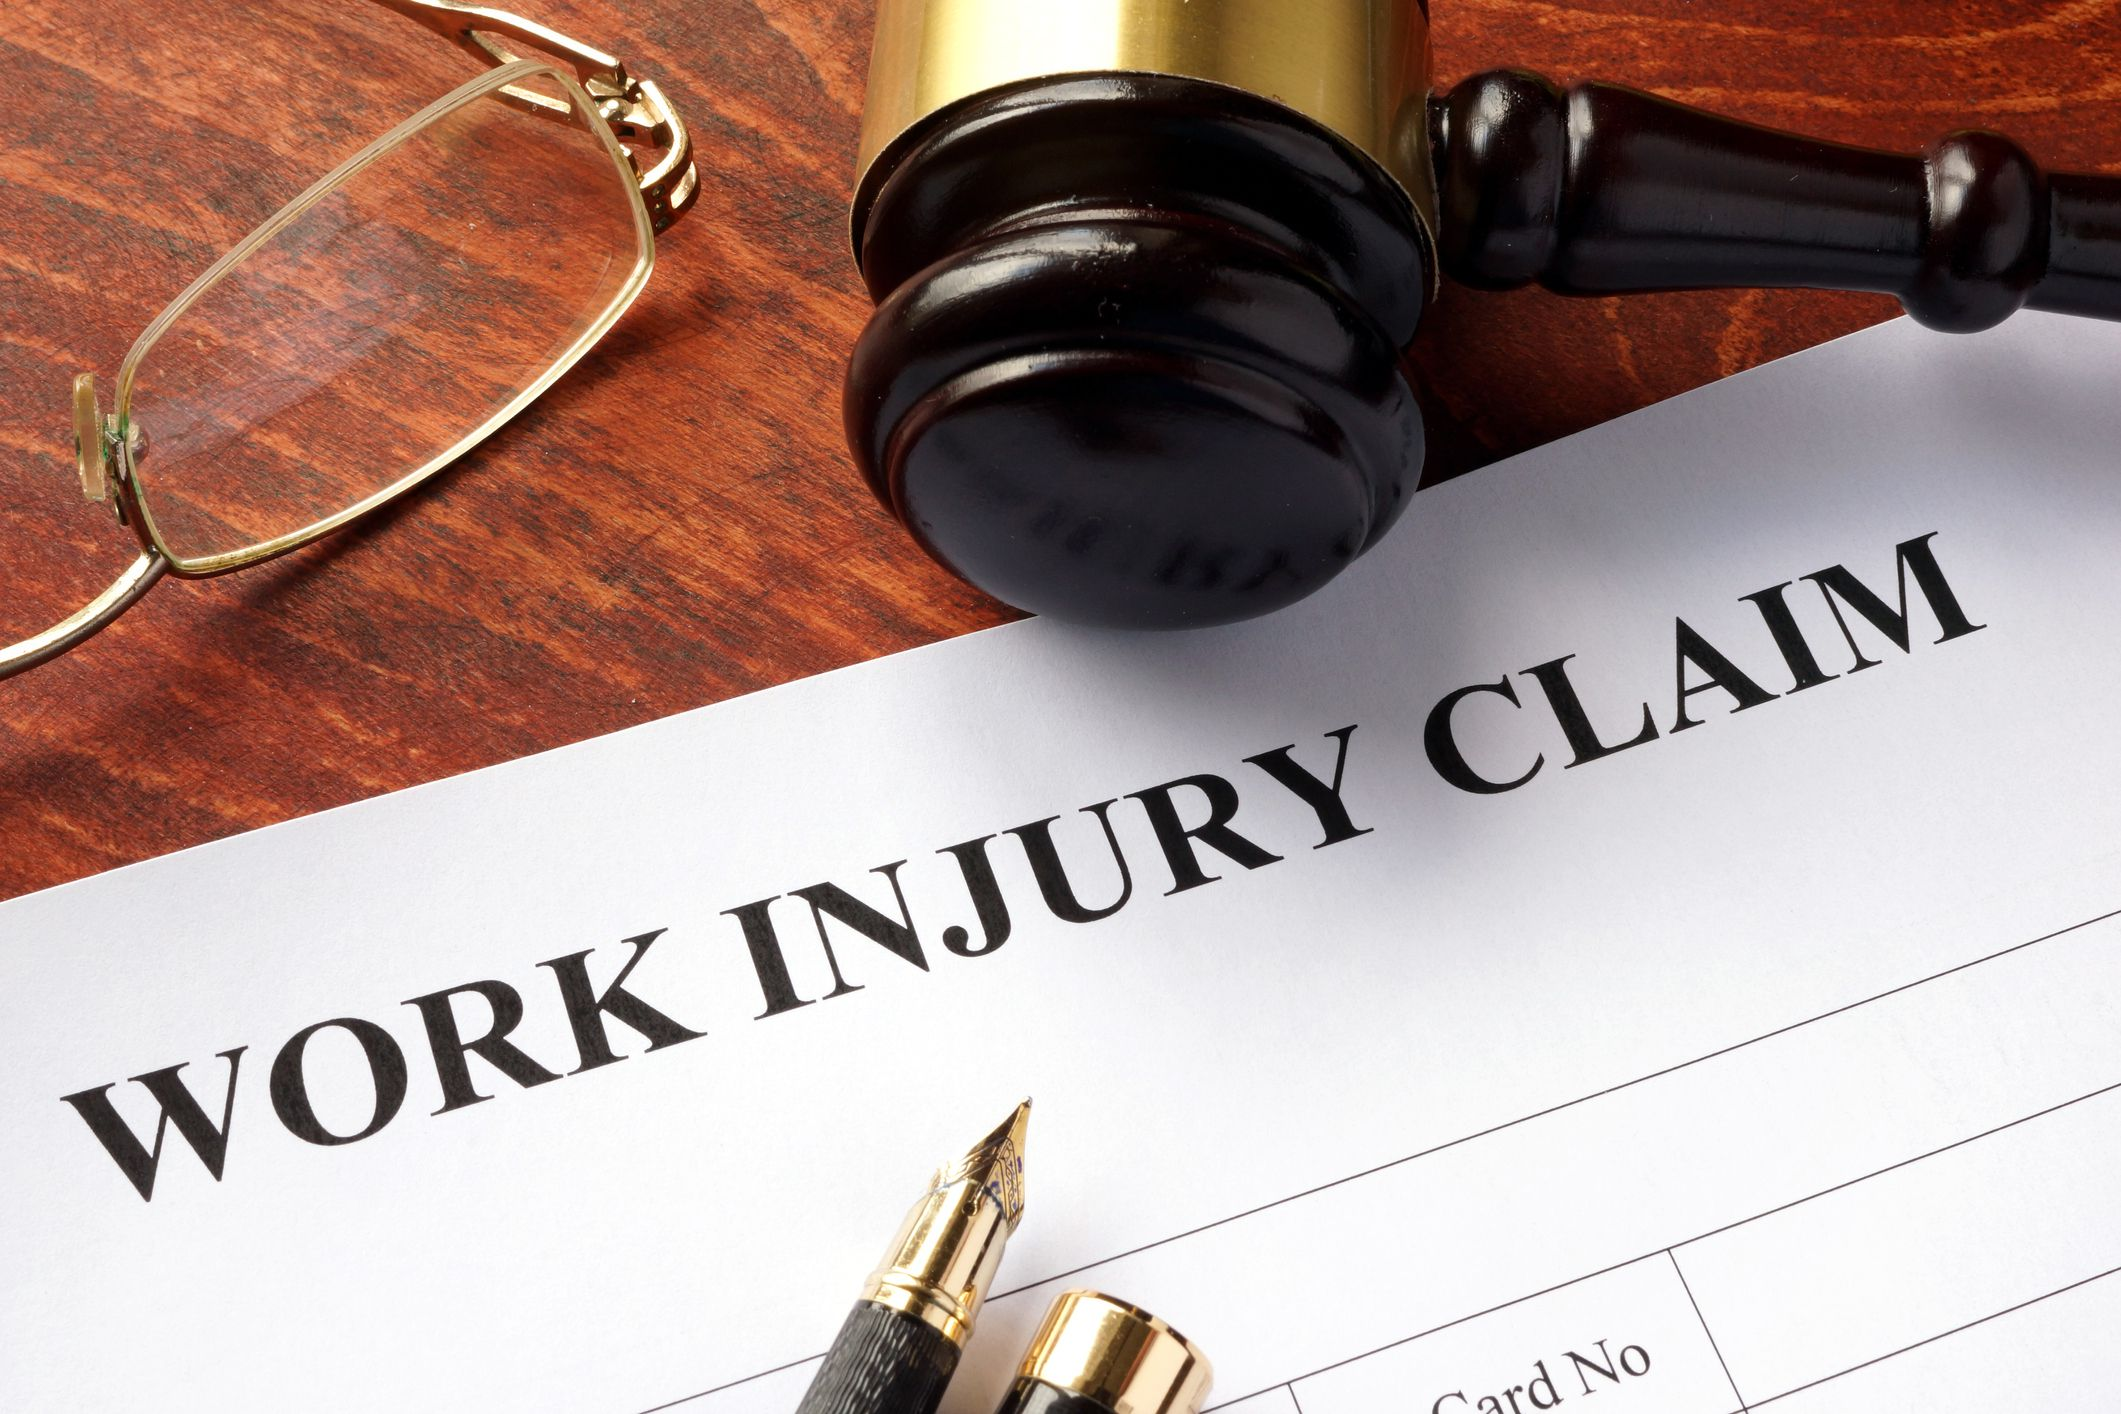 25 Largest Workers Compensation Insurers